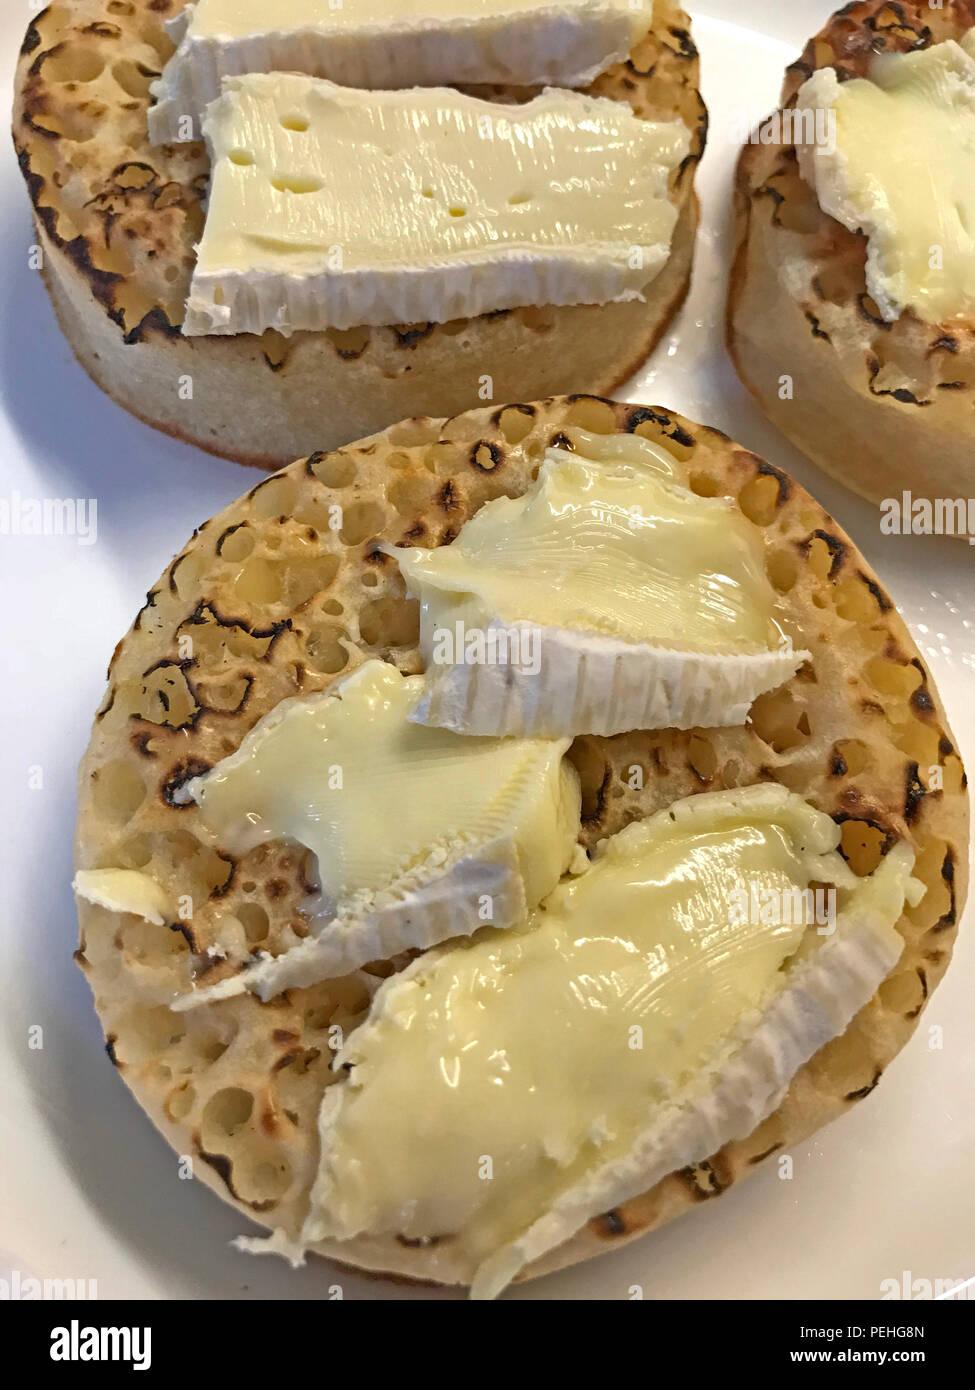 Camembert cheese melting on toasted crumpets - Stock Image